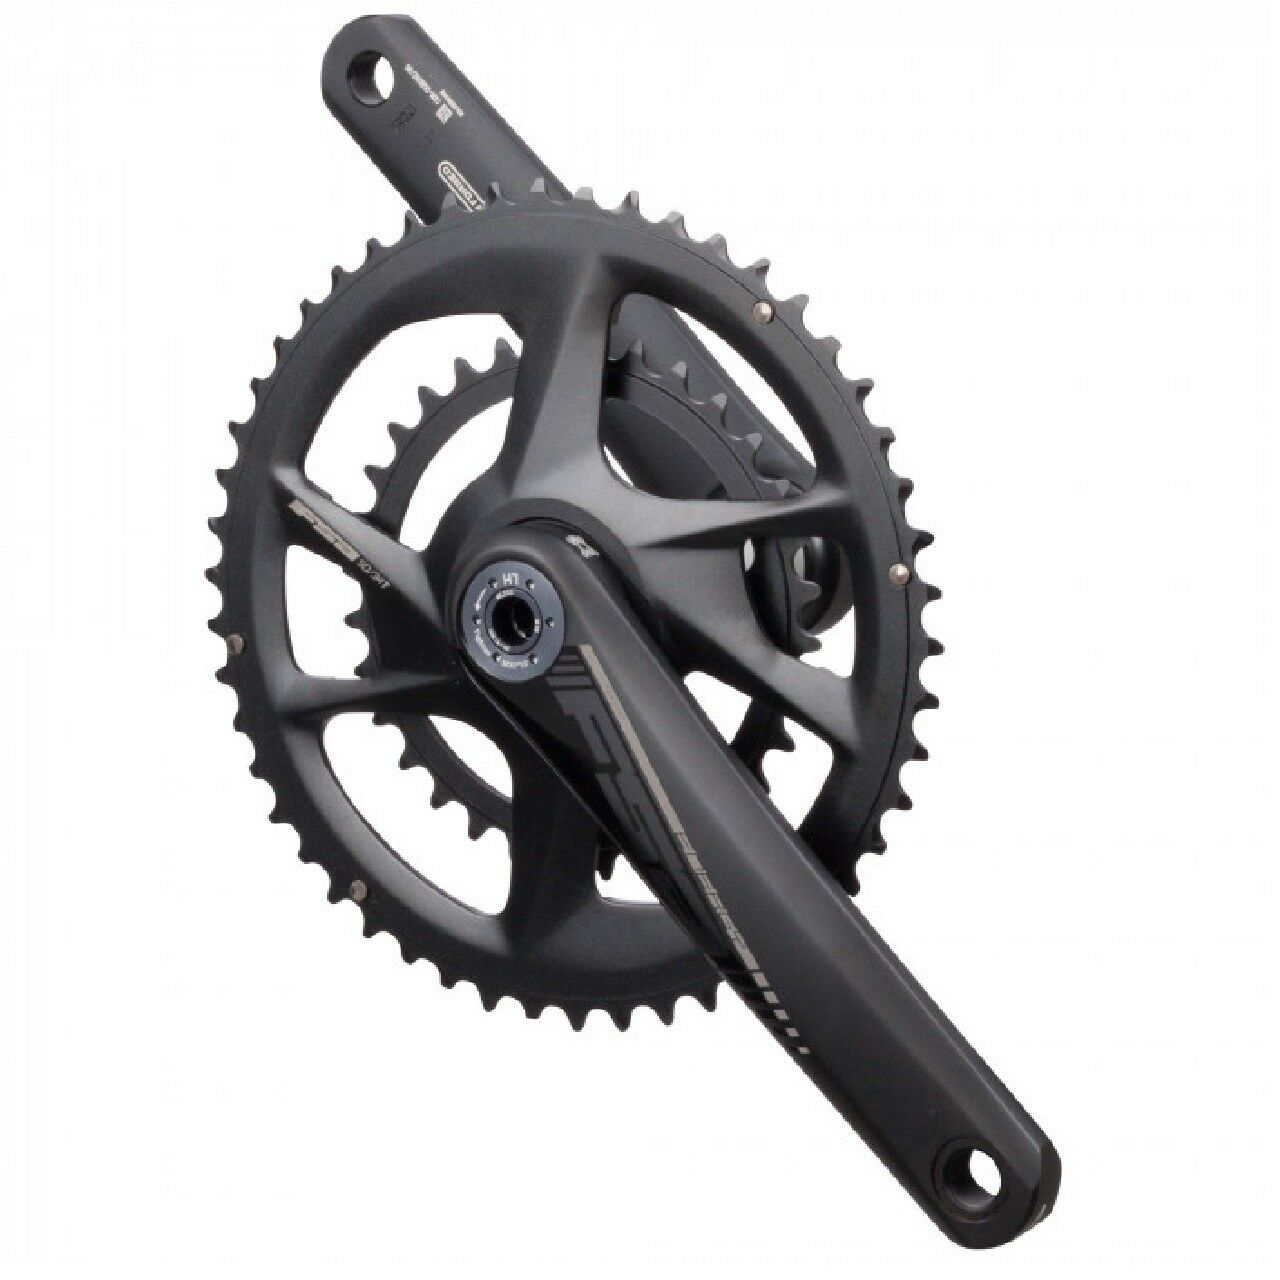 FSA ENERGY MODULAR ALLOY CRANKSET 34 50T 170mm BB386EVO DM